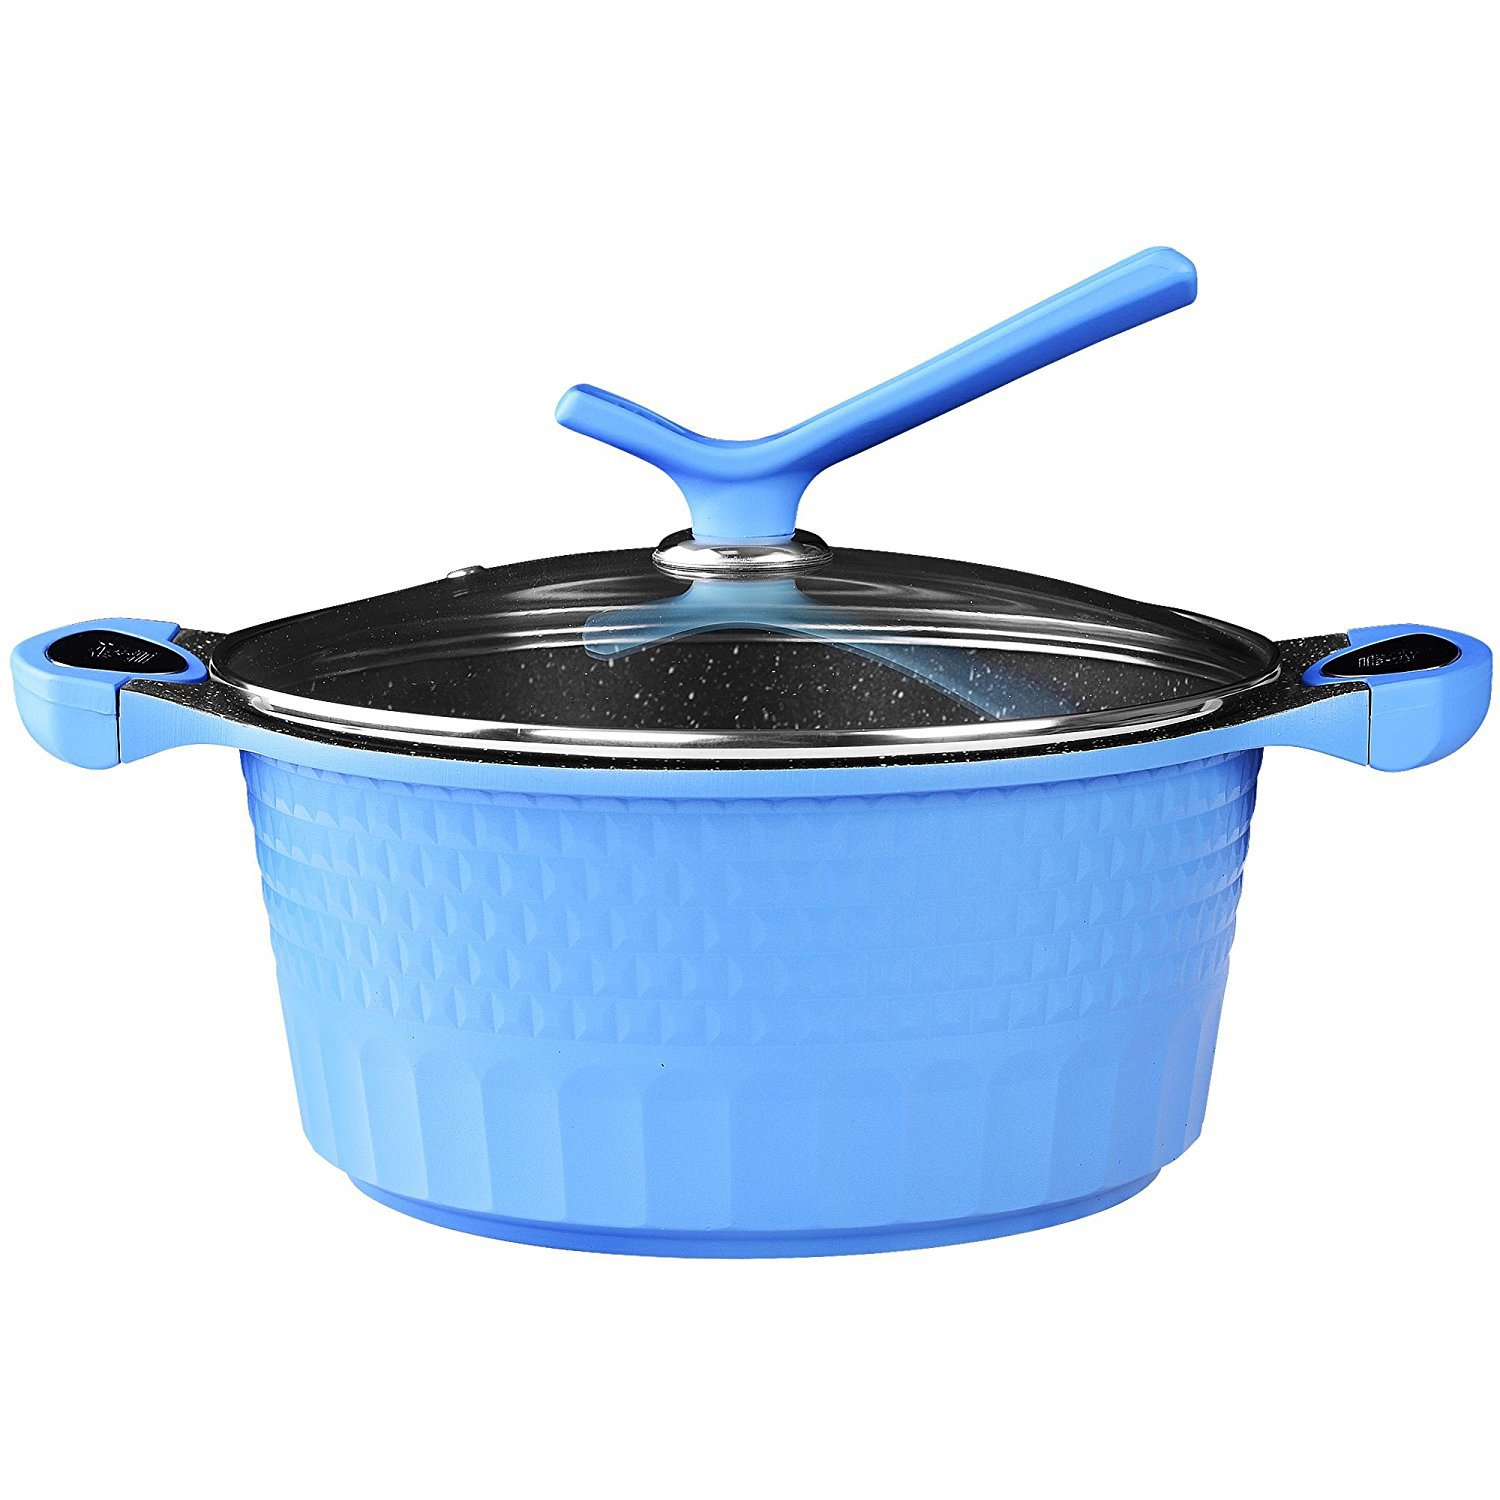 100% PFOA Free Marble Coated Non Stick Die-Casting Casserole Dish Pot Pan with Glass Lid & Silicon Handle (20 cm, Blue) Impero Romano